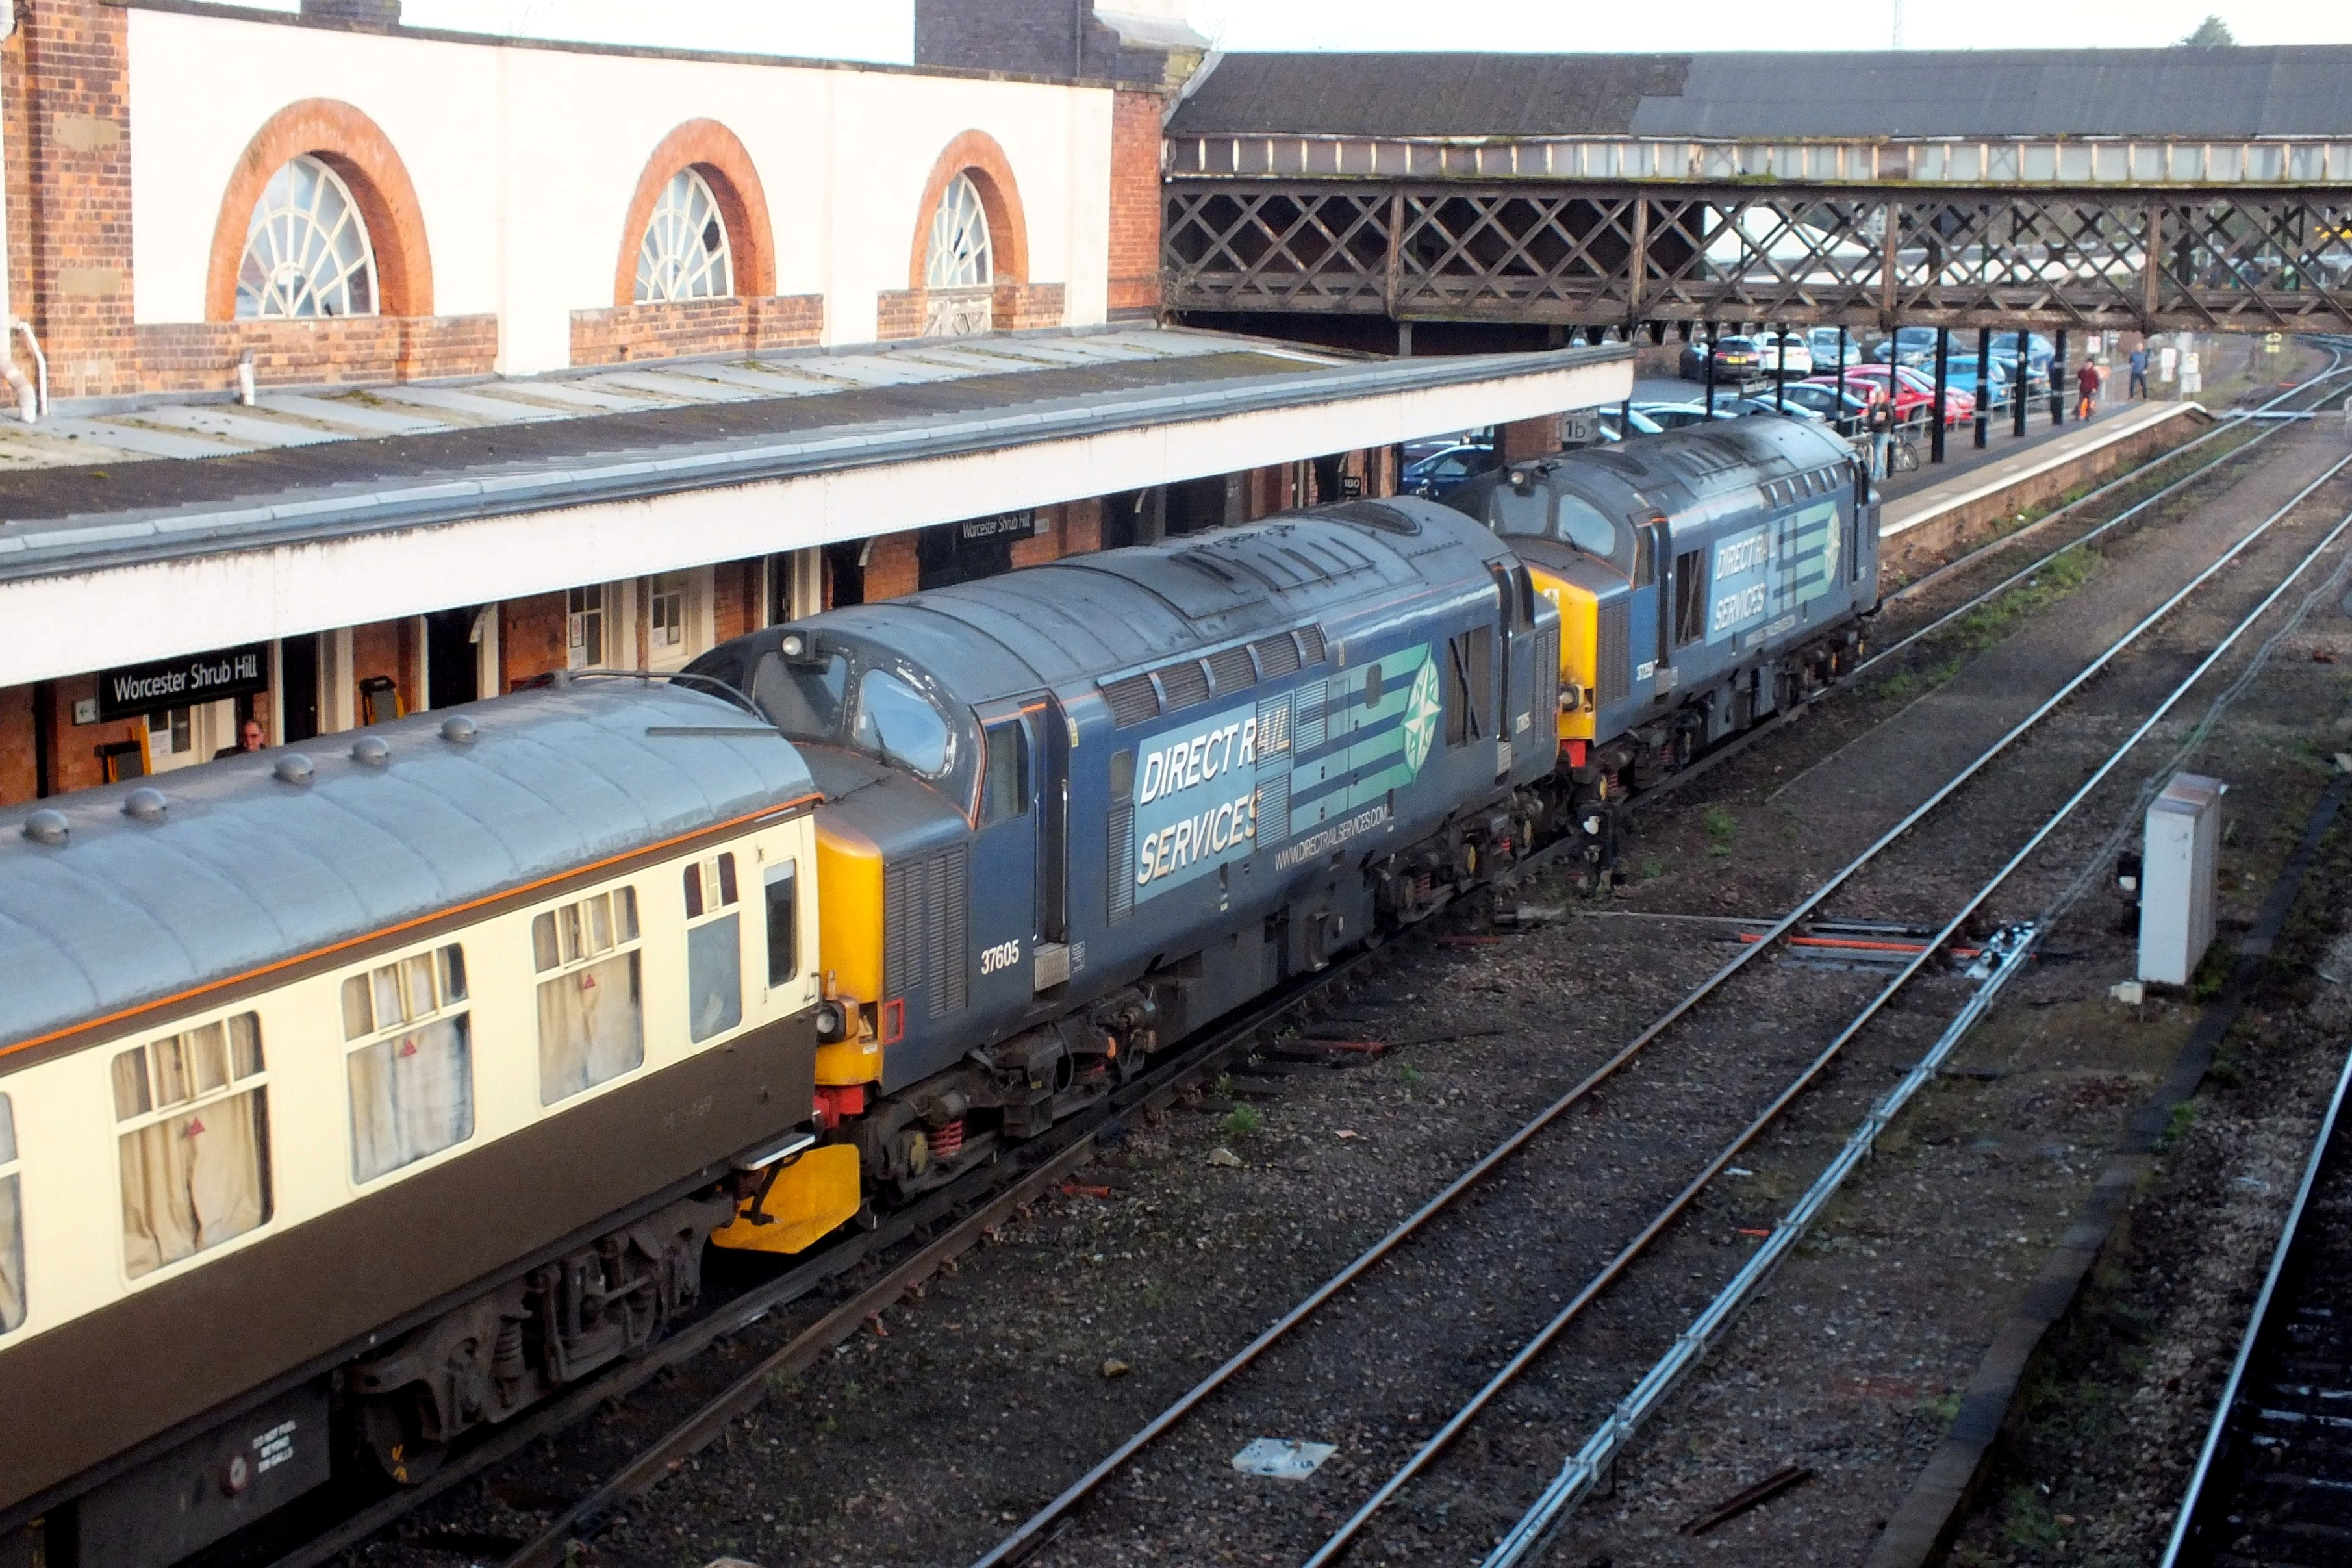 30 March 2018 Shrub Hill 133.jpg